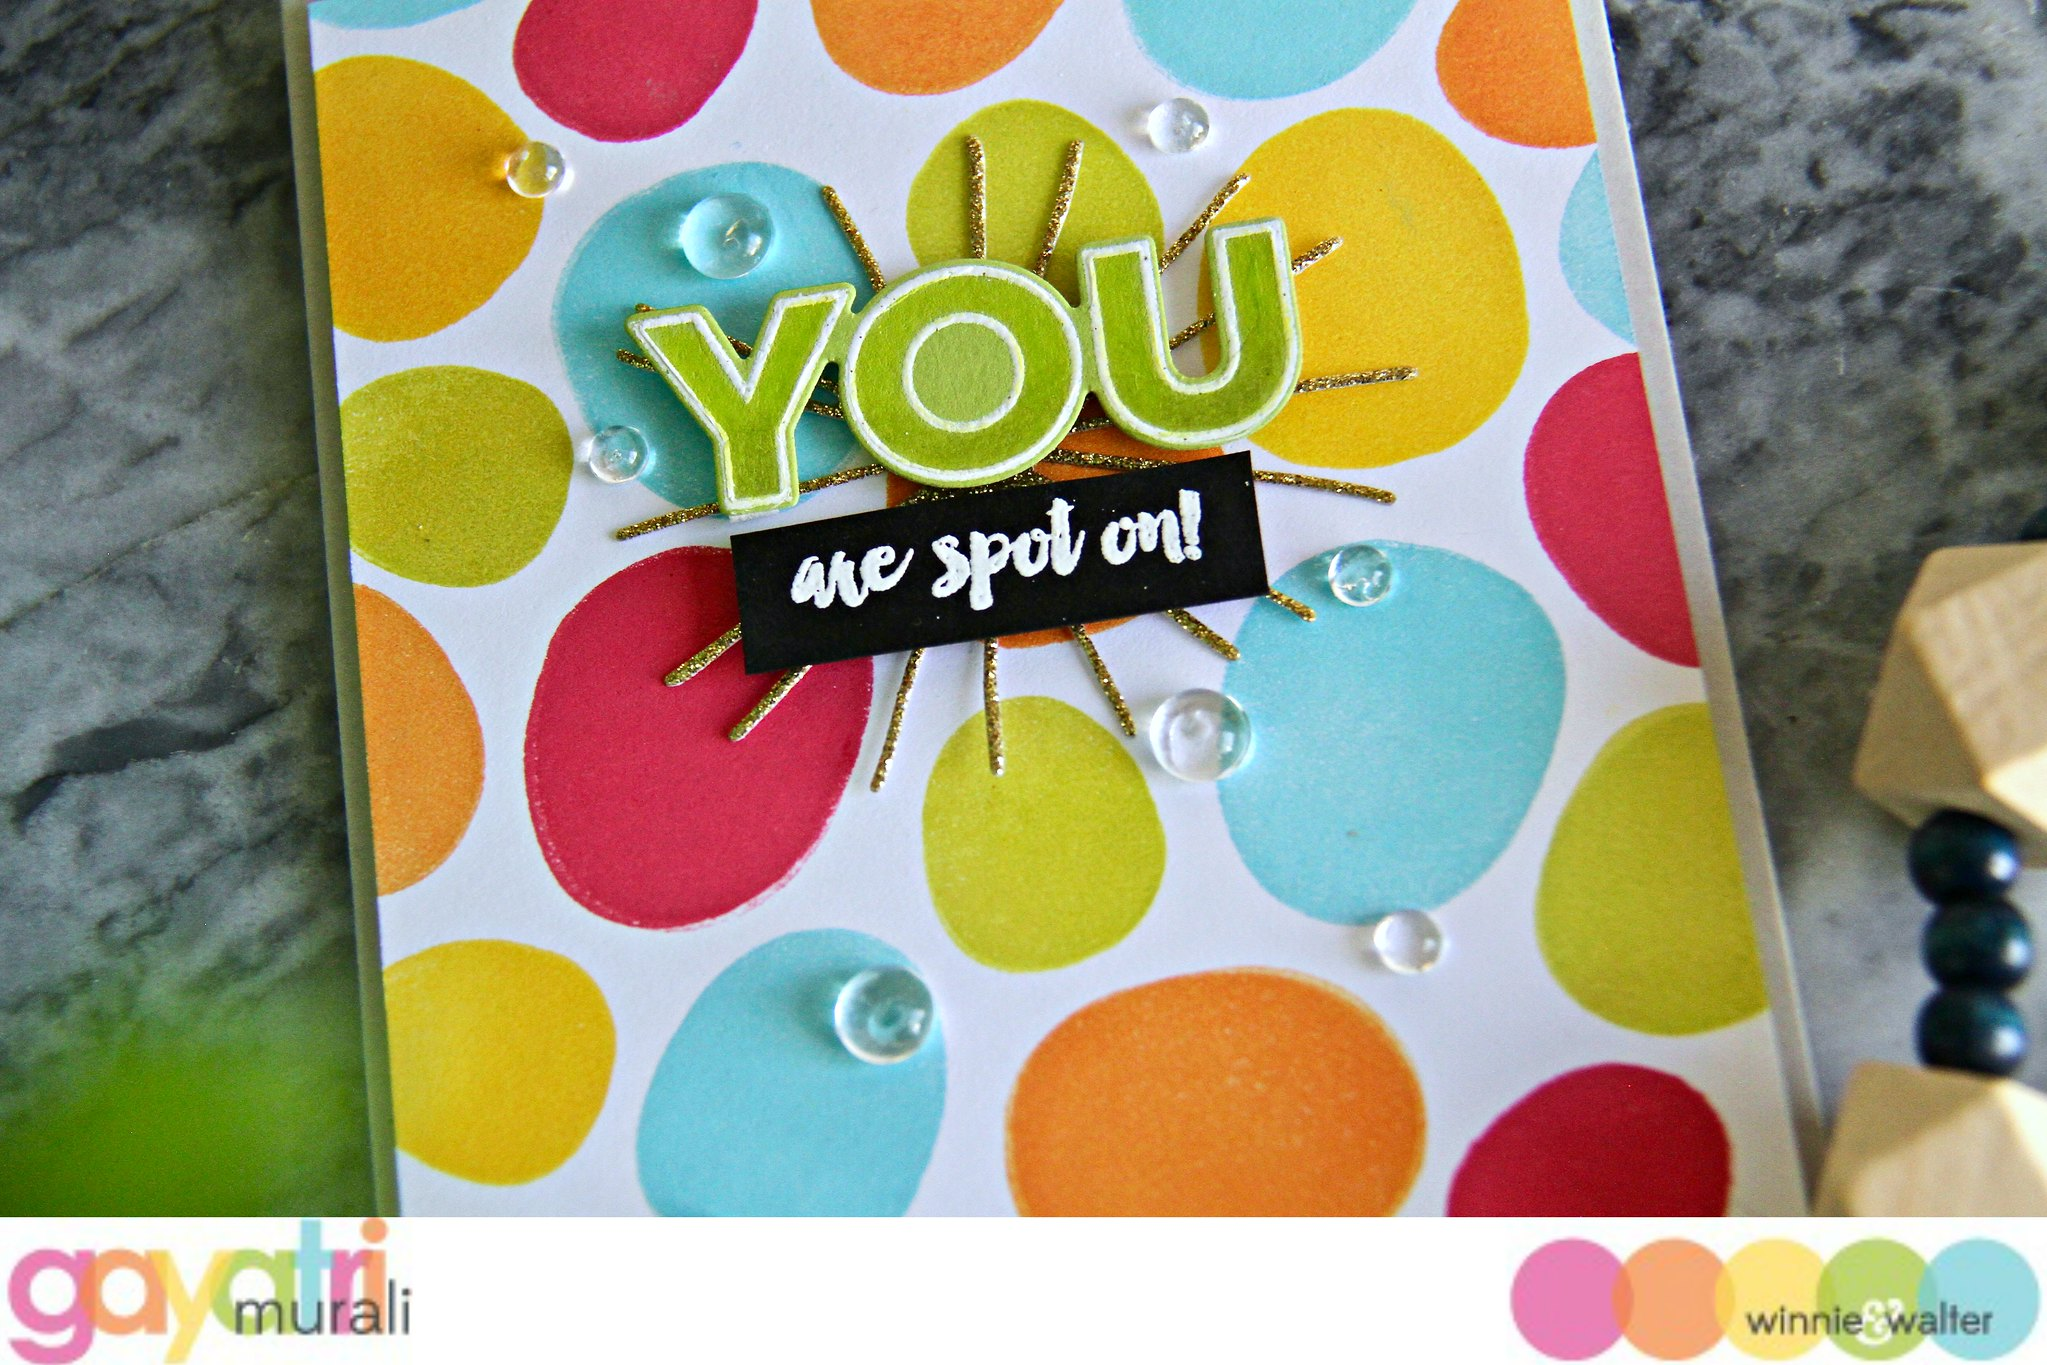 gayatri_You are spot on card closeup1